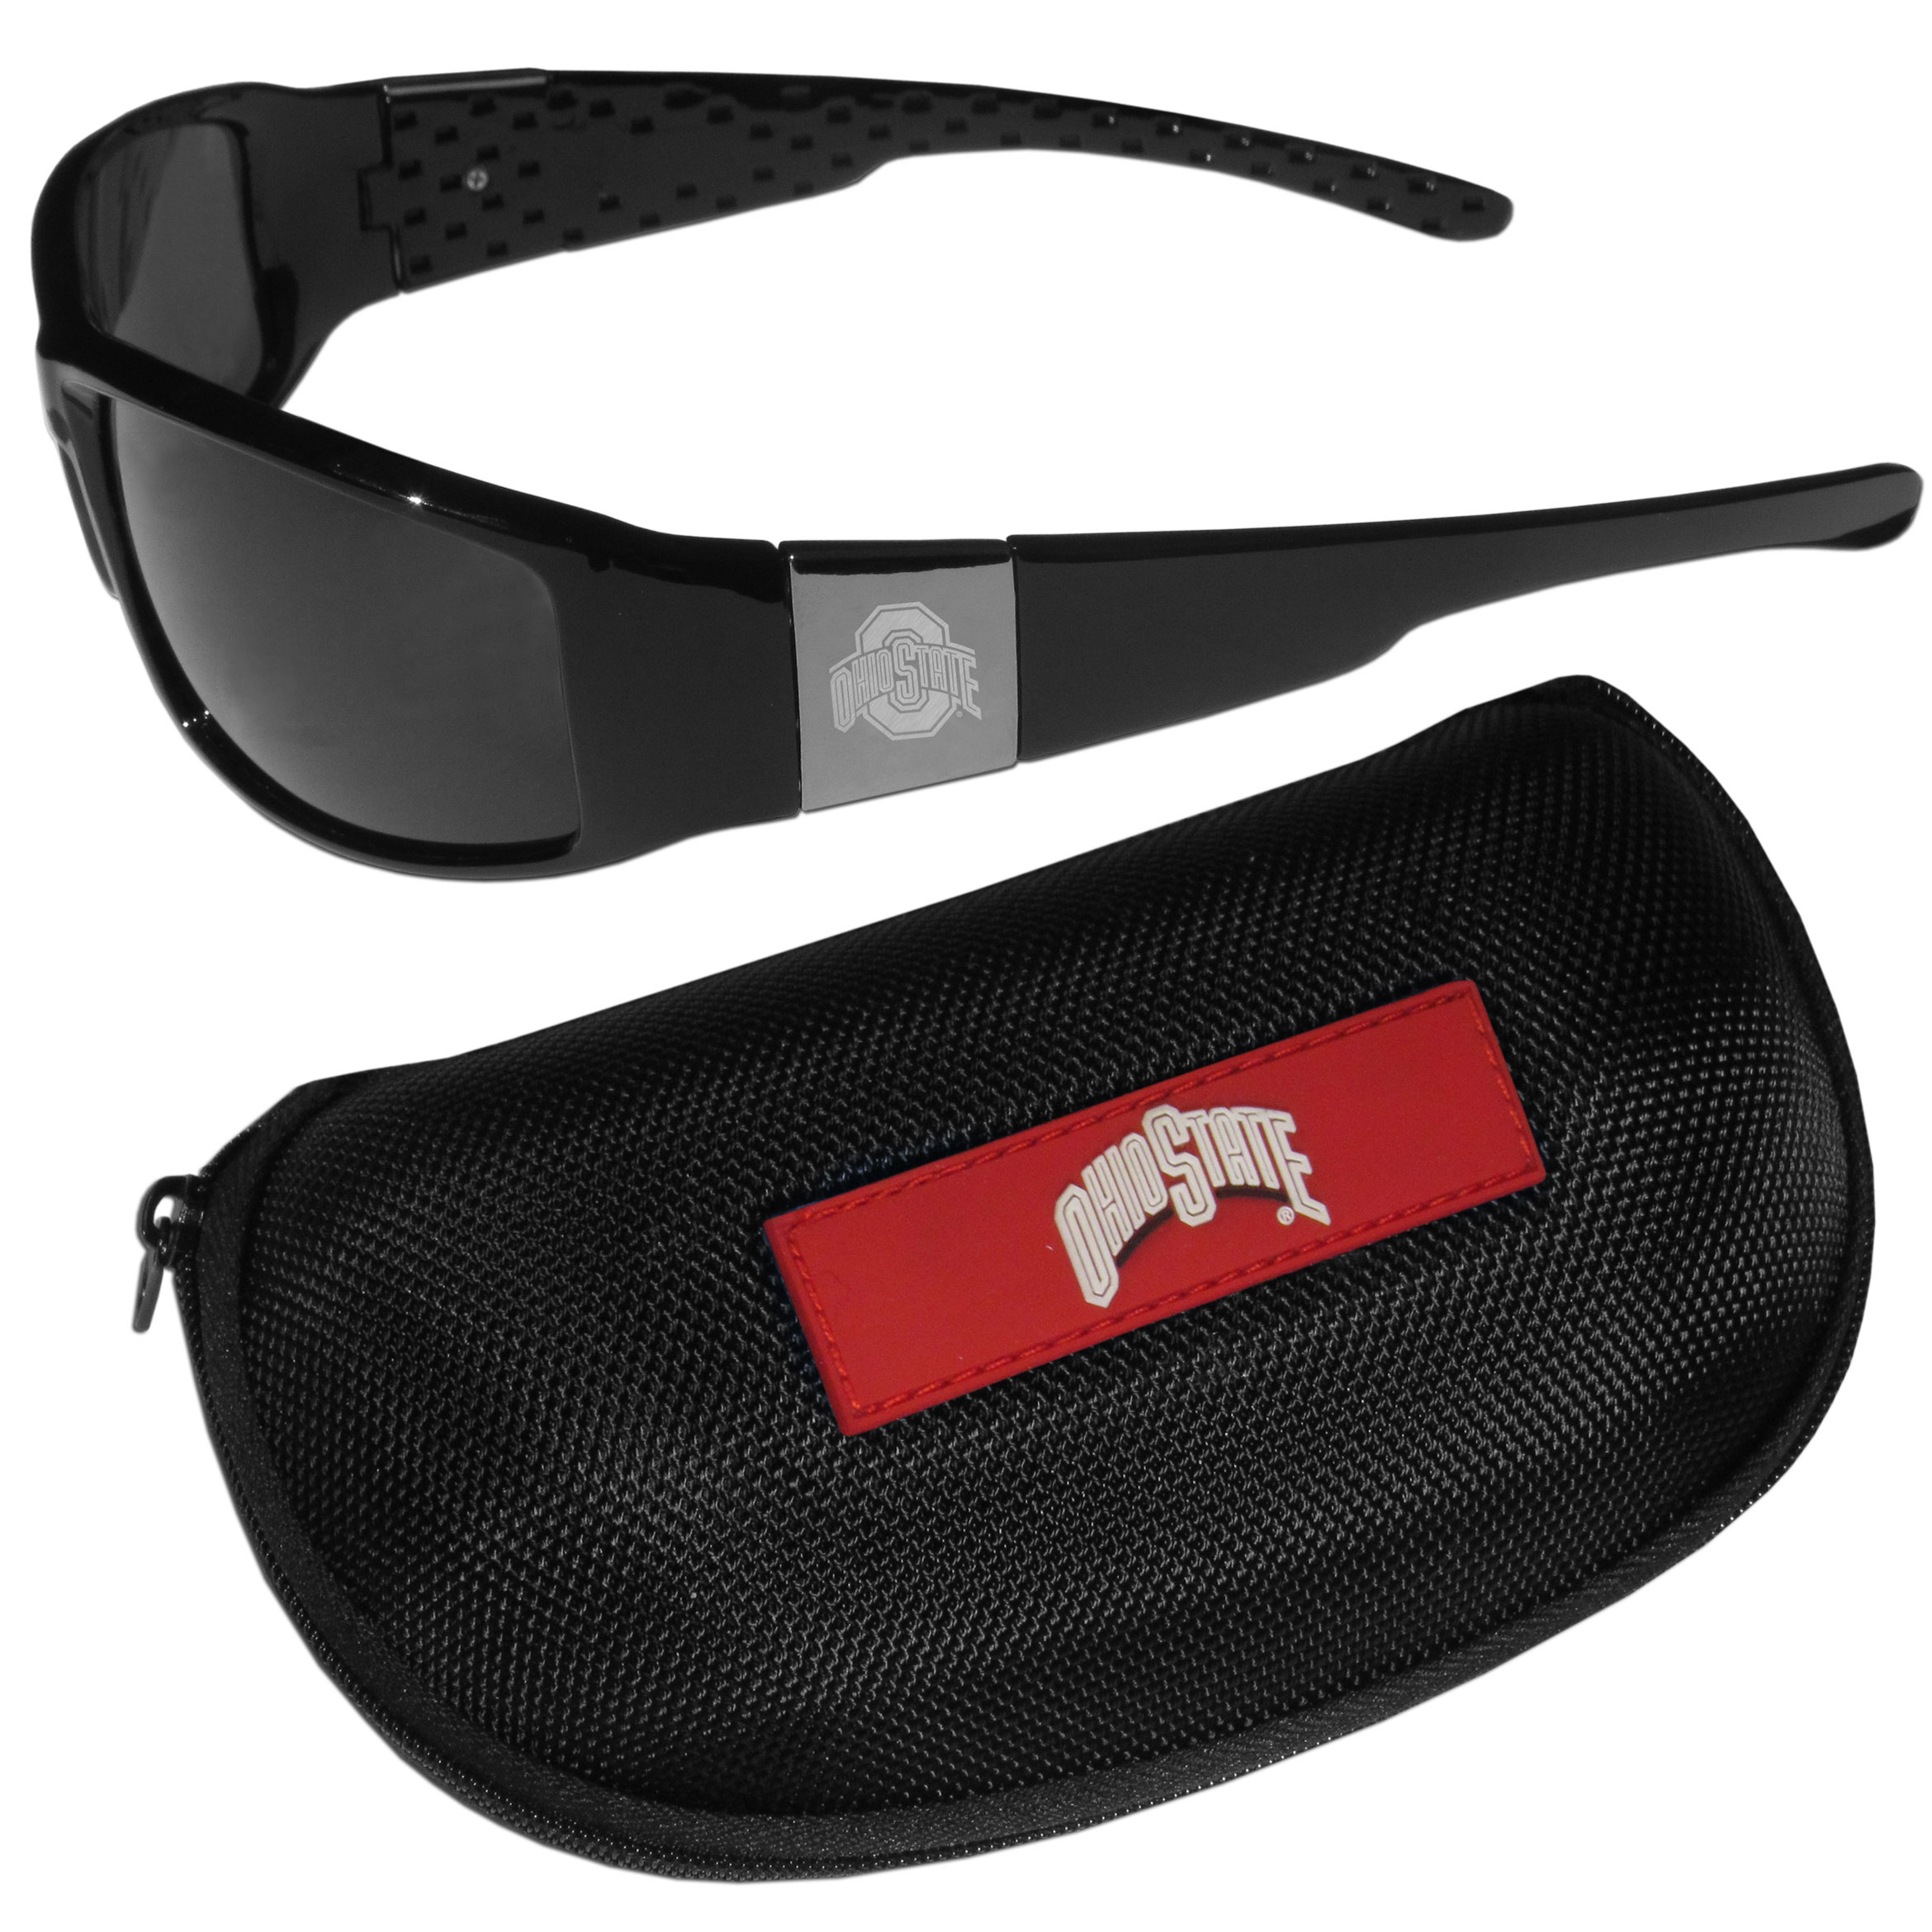 Ohio St. Buckeyes Chrome Wrap Sunglasses and Zippered Carrying Case - These designer inspired frames have a sleek look in all black with high-polish chrome Ohio St. Buckeyes shields on each arm with an etched logo. The shades are perfect any outdoor activity like; golfing, driving, hiking, fishing or cheering on the team at a tailgating event or an at home game day BBQ with a lens rating of 100% UVA/UVB for maximum UV protection. The high-quality frames are as durable as they are fashionable and with their classic look they are perfect fan accessory that can be worn everyday for every occasion. The shades come with a zippered hard shell case to keep your sunglasses safe.